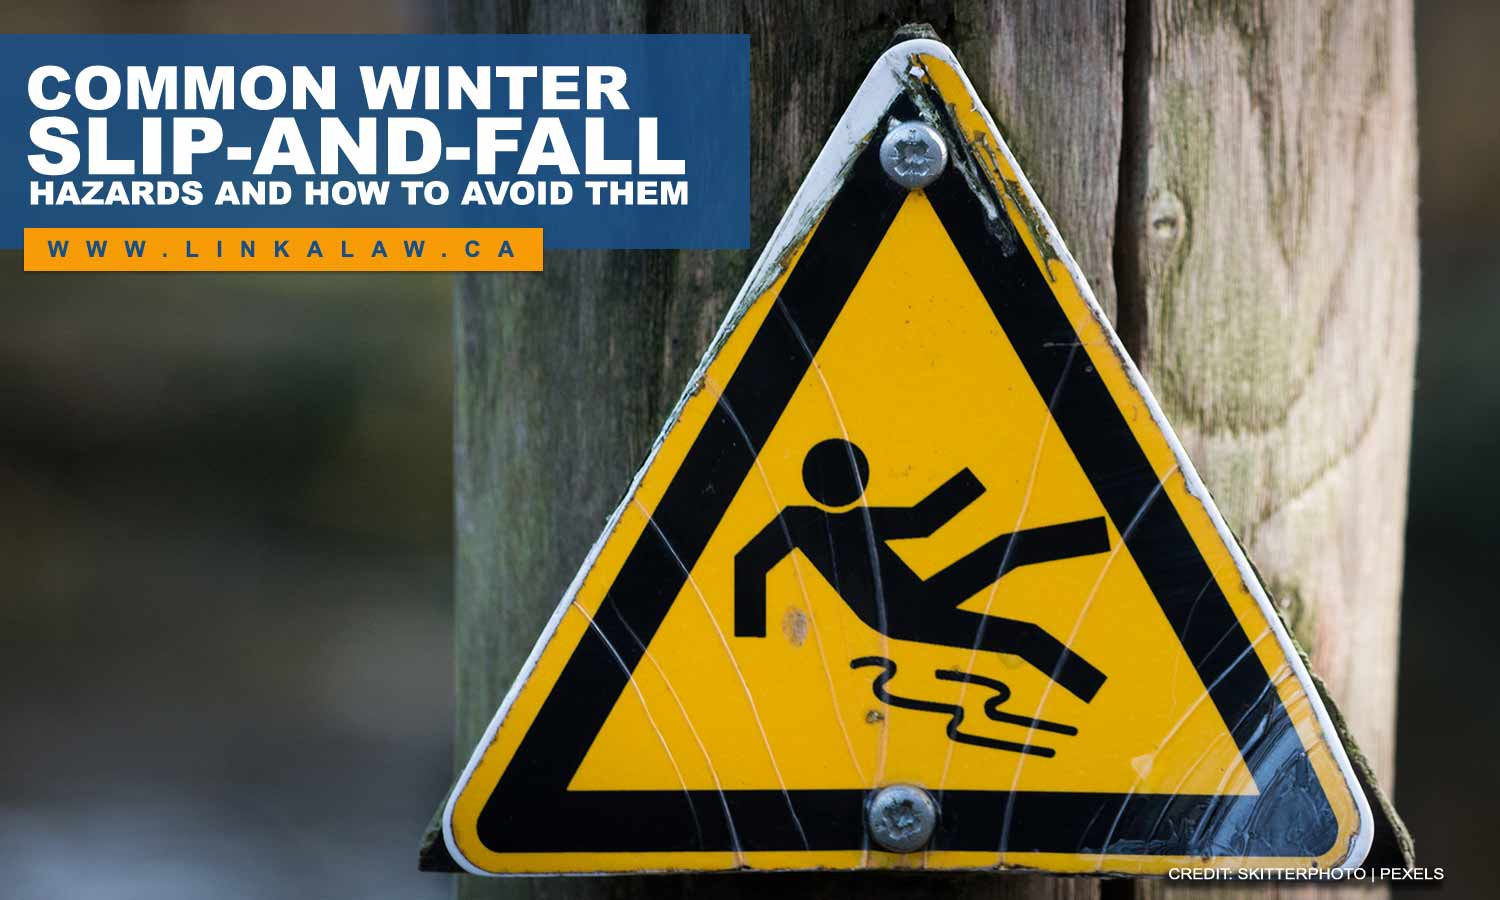 Common Winter Slip-and-fall Hazards And How To Avoid Them